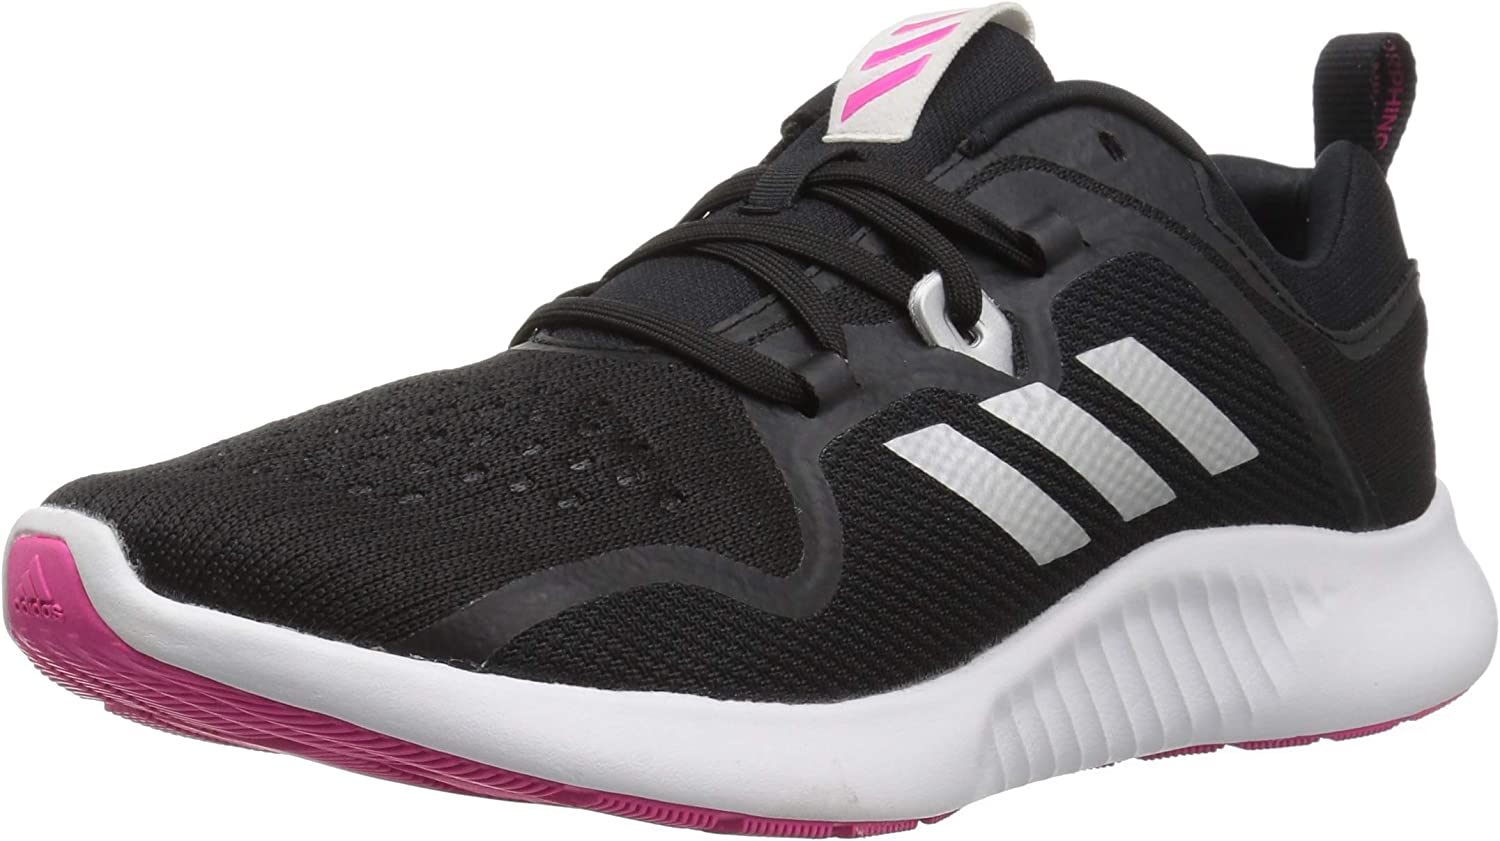 adidas Women s Edgebounce Mid Running Shoe, Black Silver Metallic Shock Pink, 7.5 M US